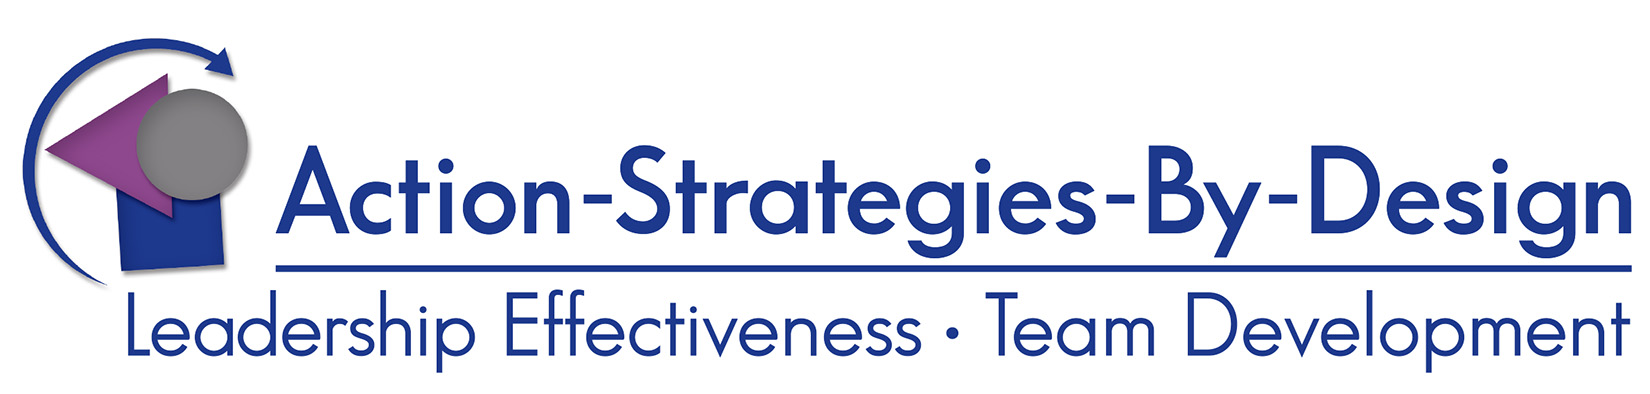 Action-Strategies-By-Design, LLC logo